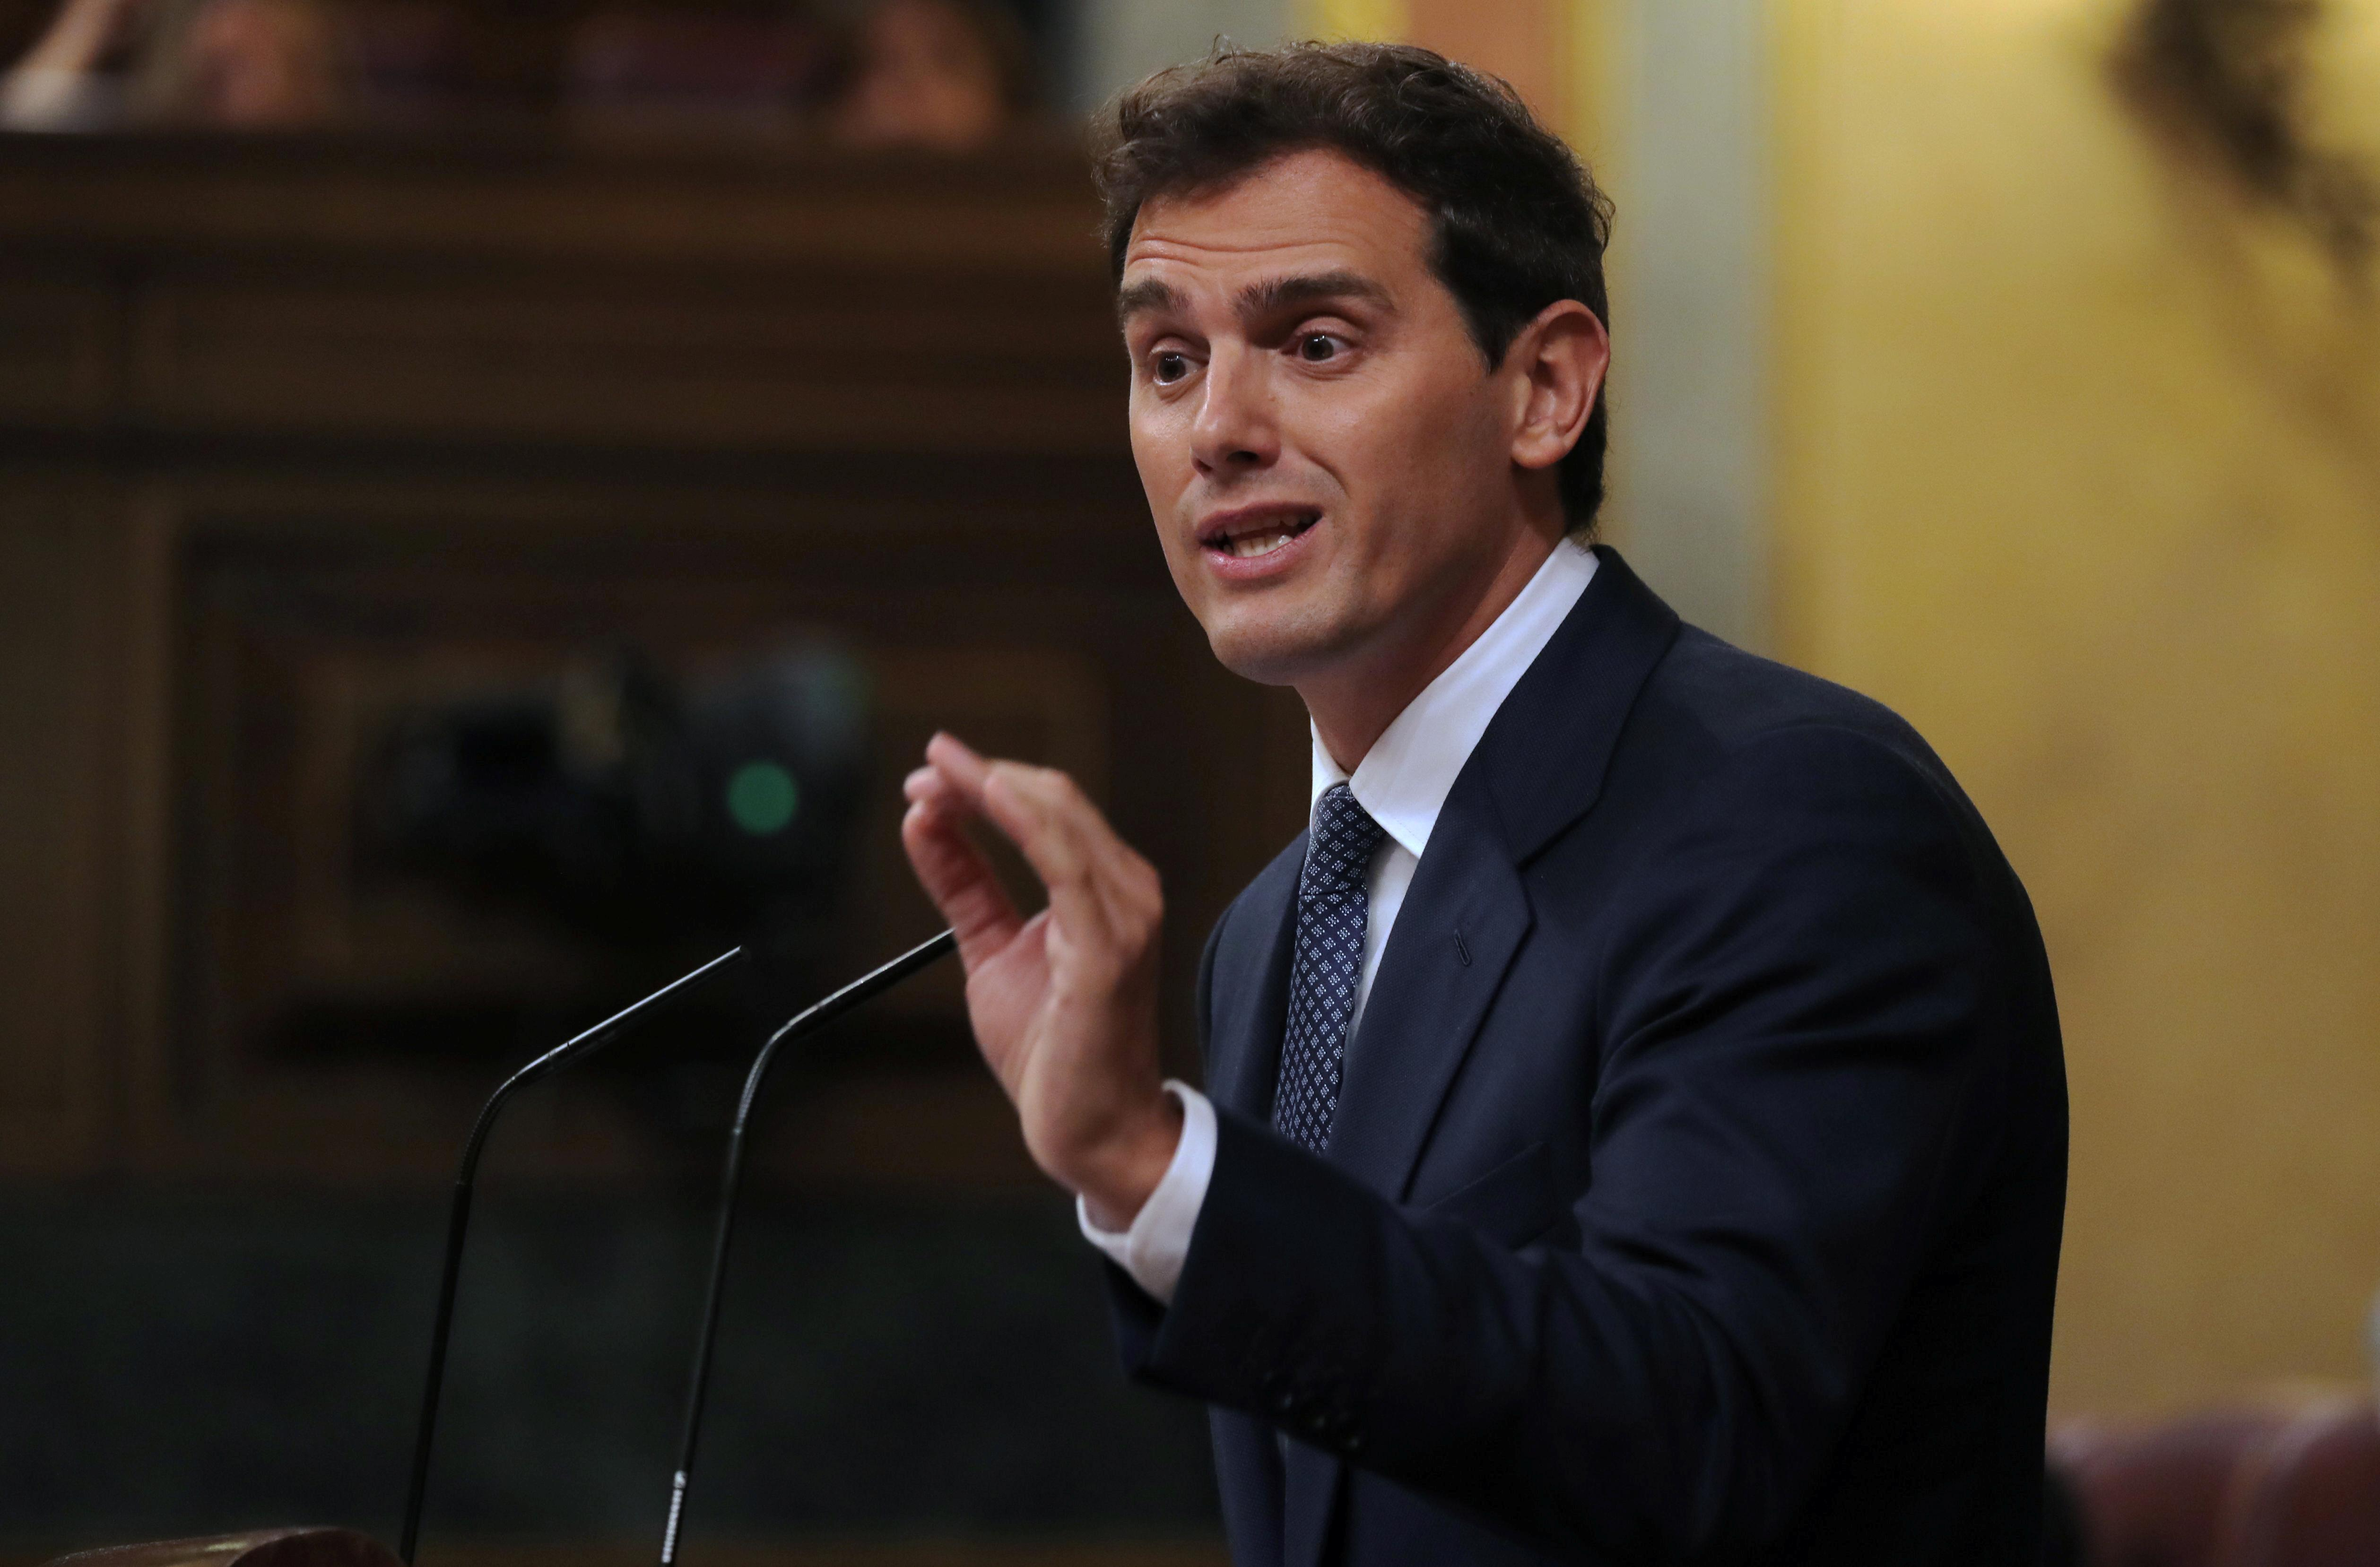 Spanish party offers way out of political limbo, election still looming